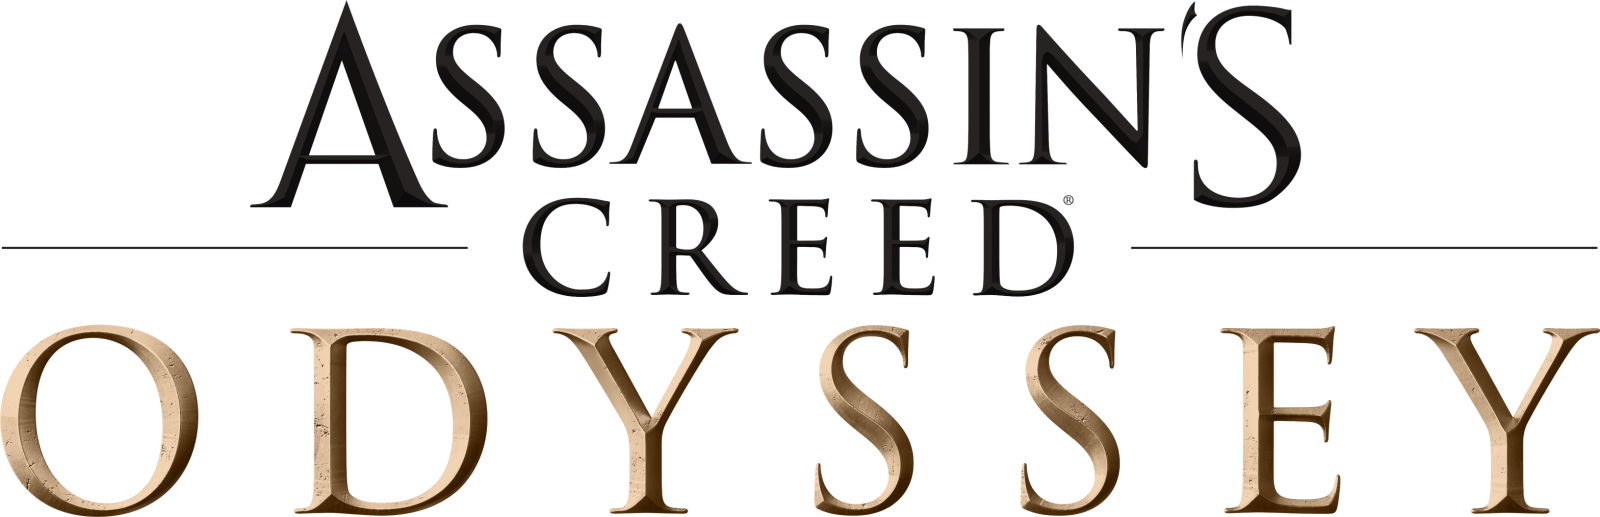 Assassin S Creed Odyssey Png Free Download Assassin S Creed